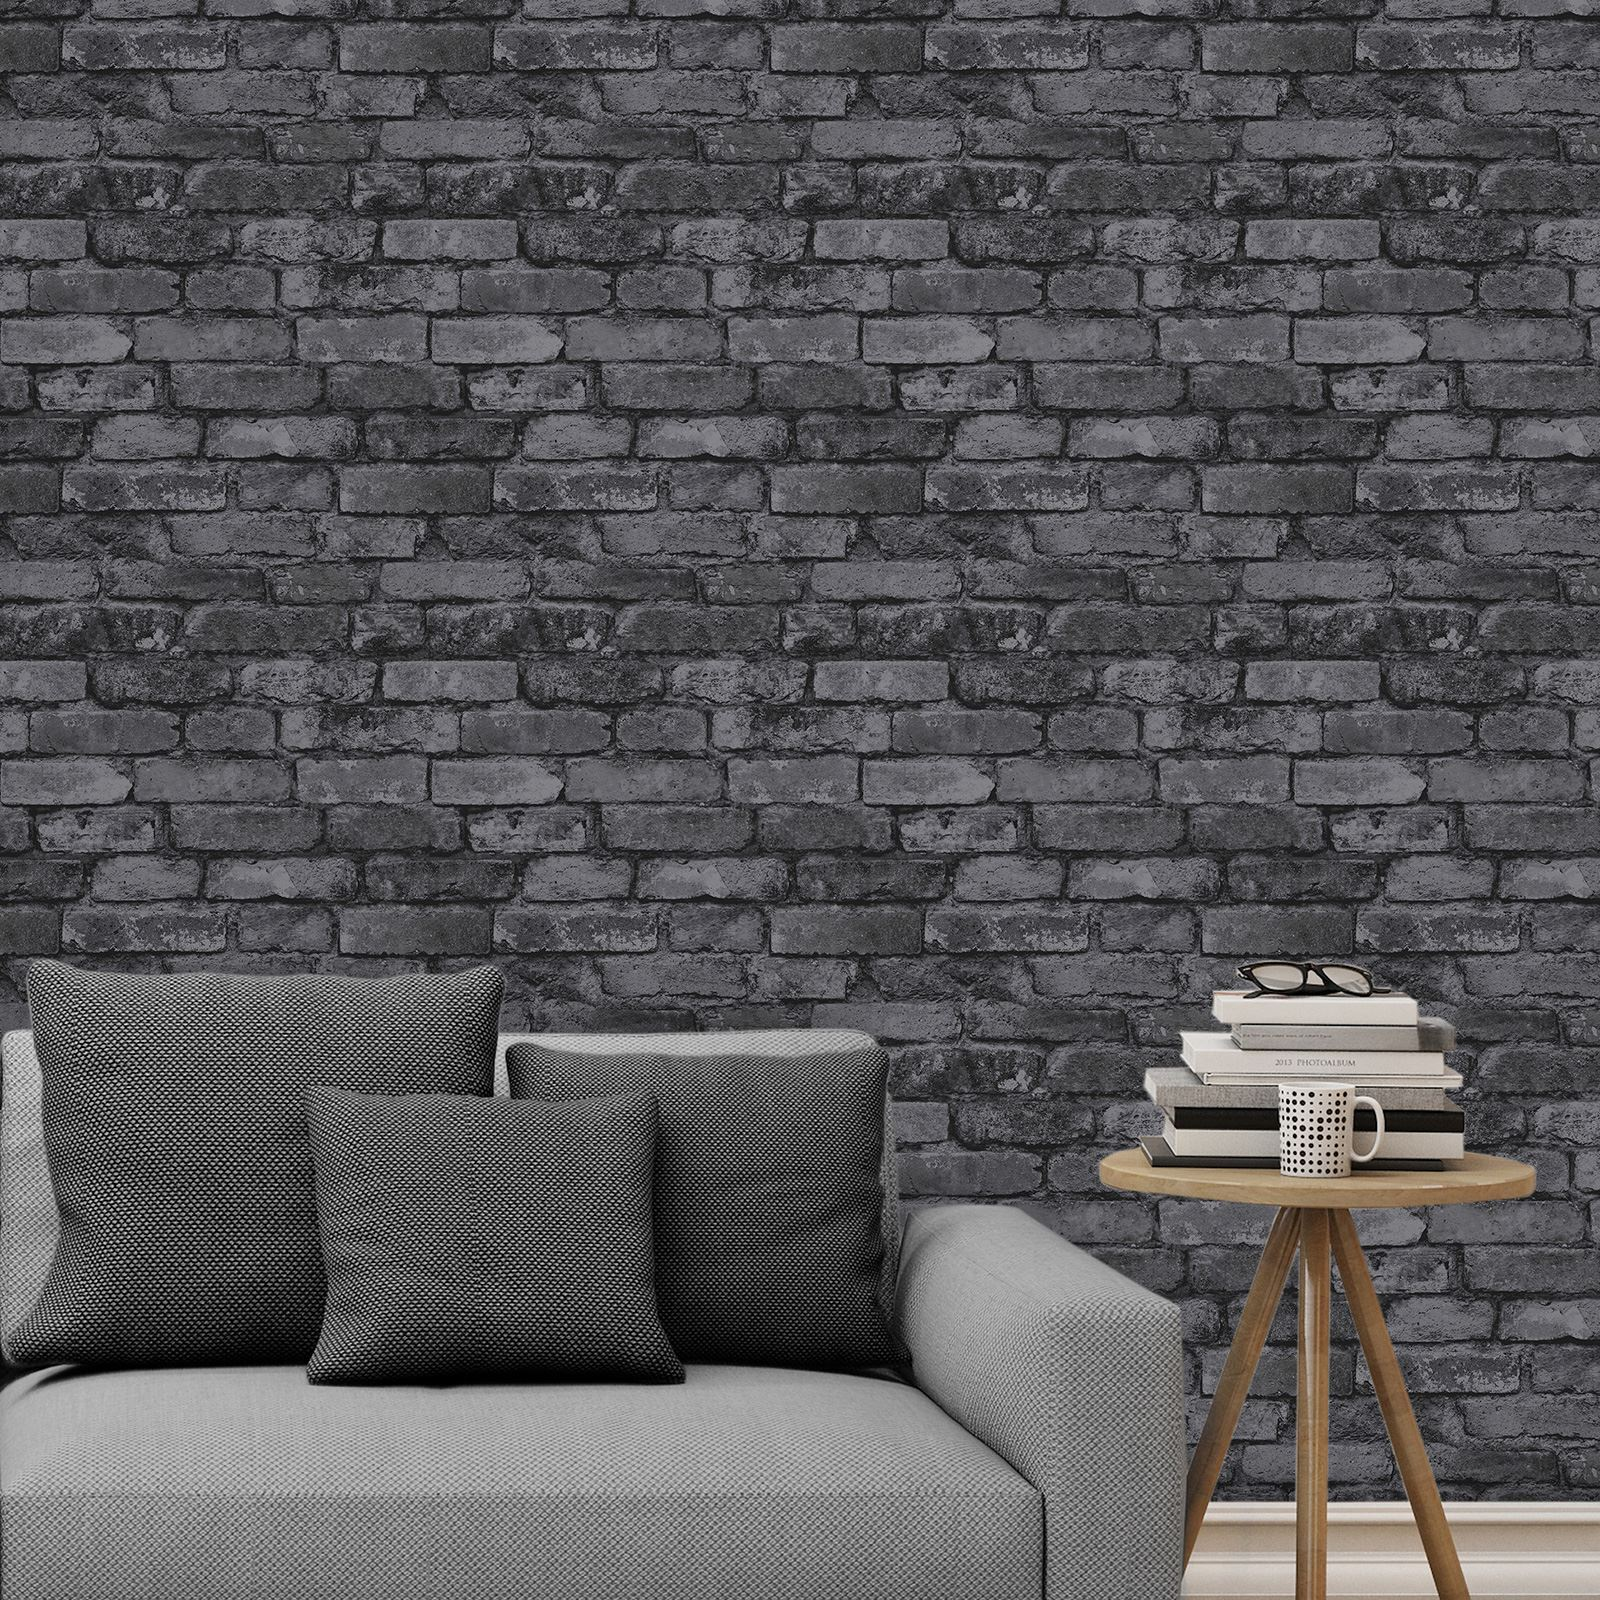 Rasch fine decor 10m luxury brick effect wallpaper stone for Grey brick wallpaper living room